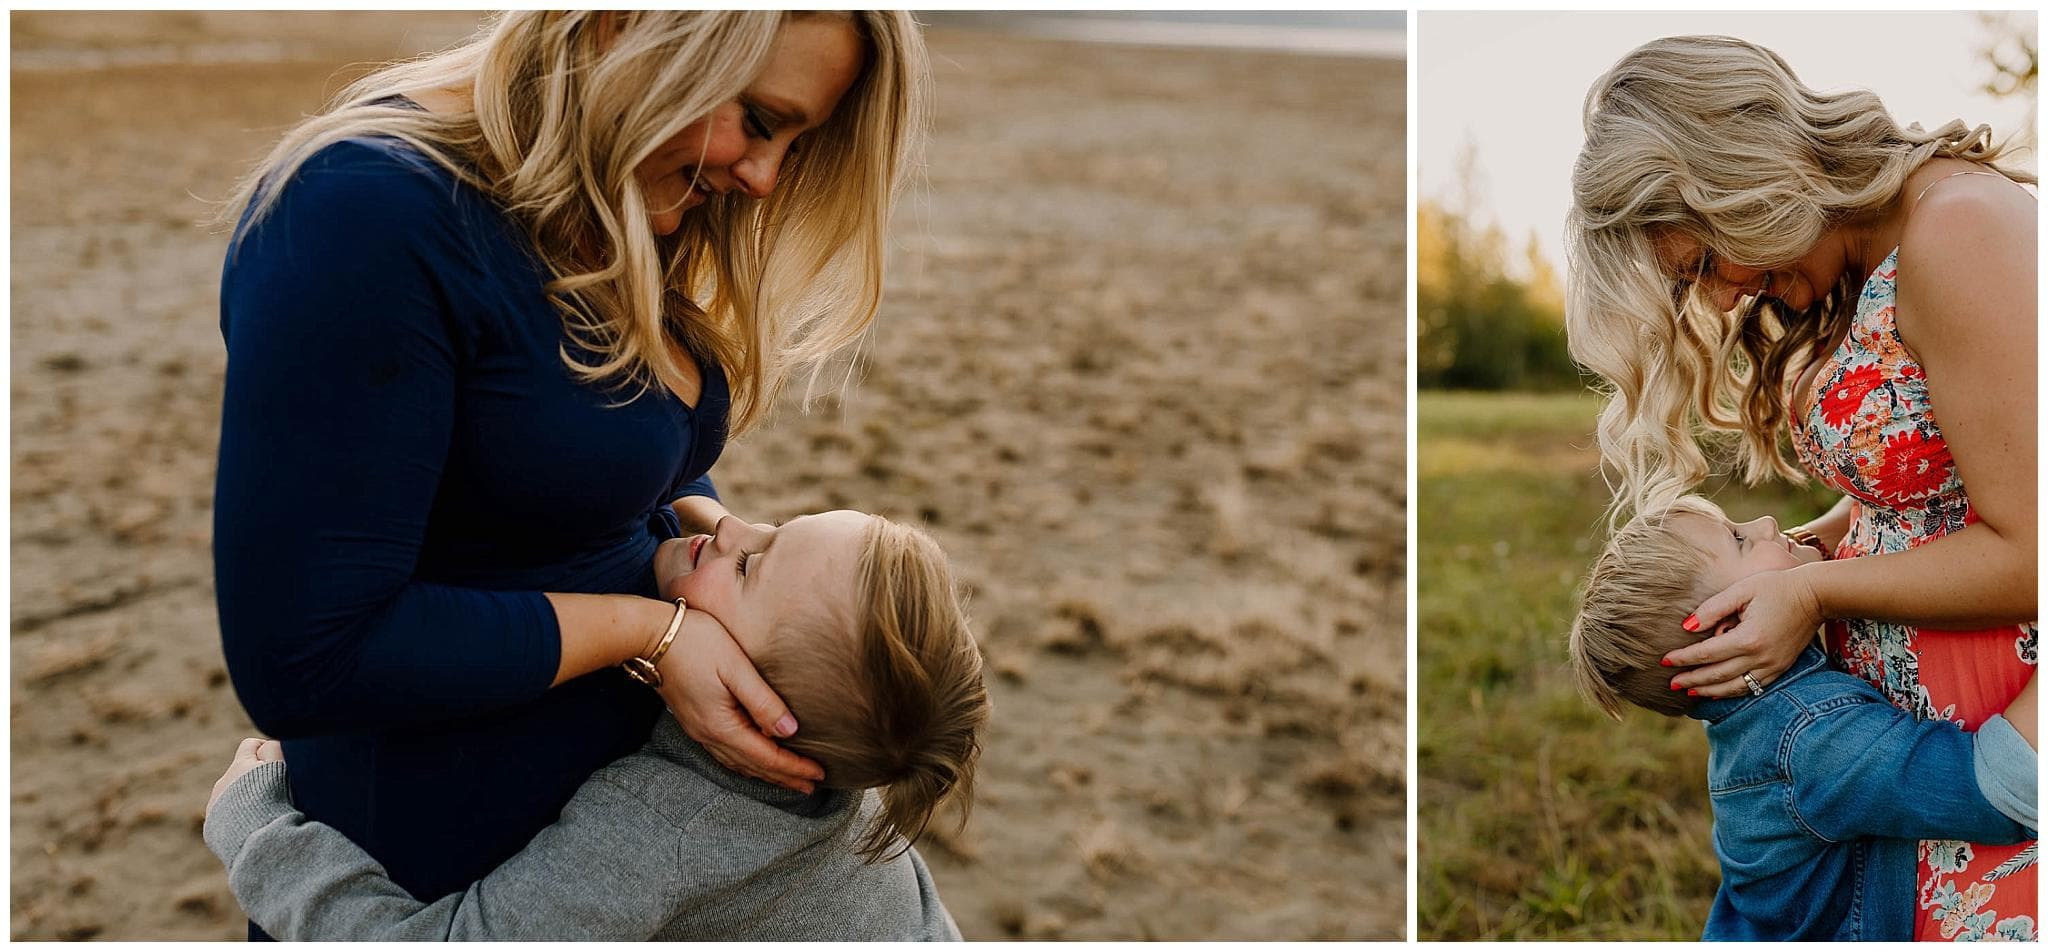 Two photos of the same mom and young son where he's looking up at her and shes holding his face - Portland family photoshoot